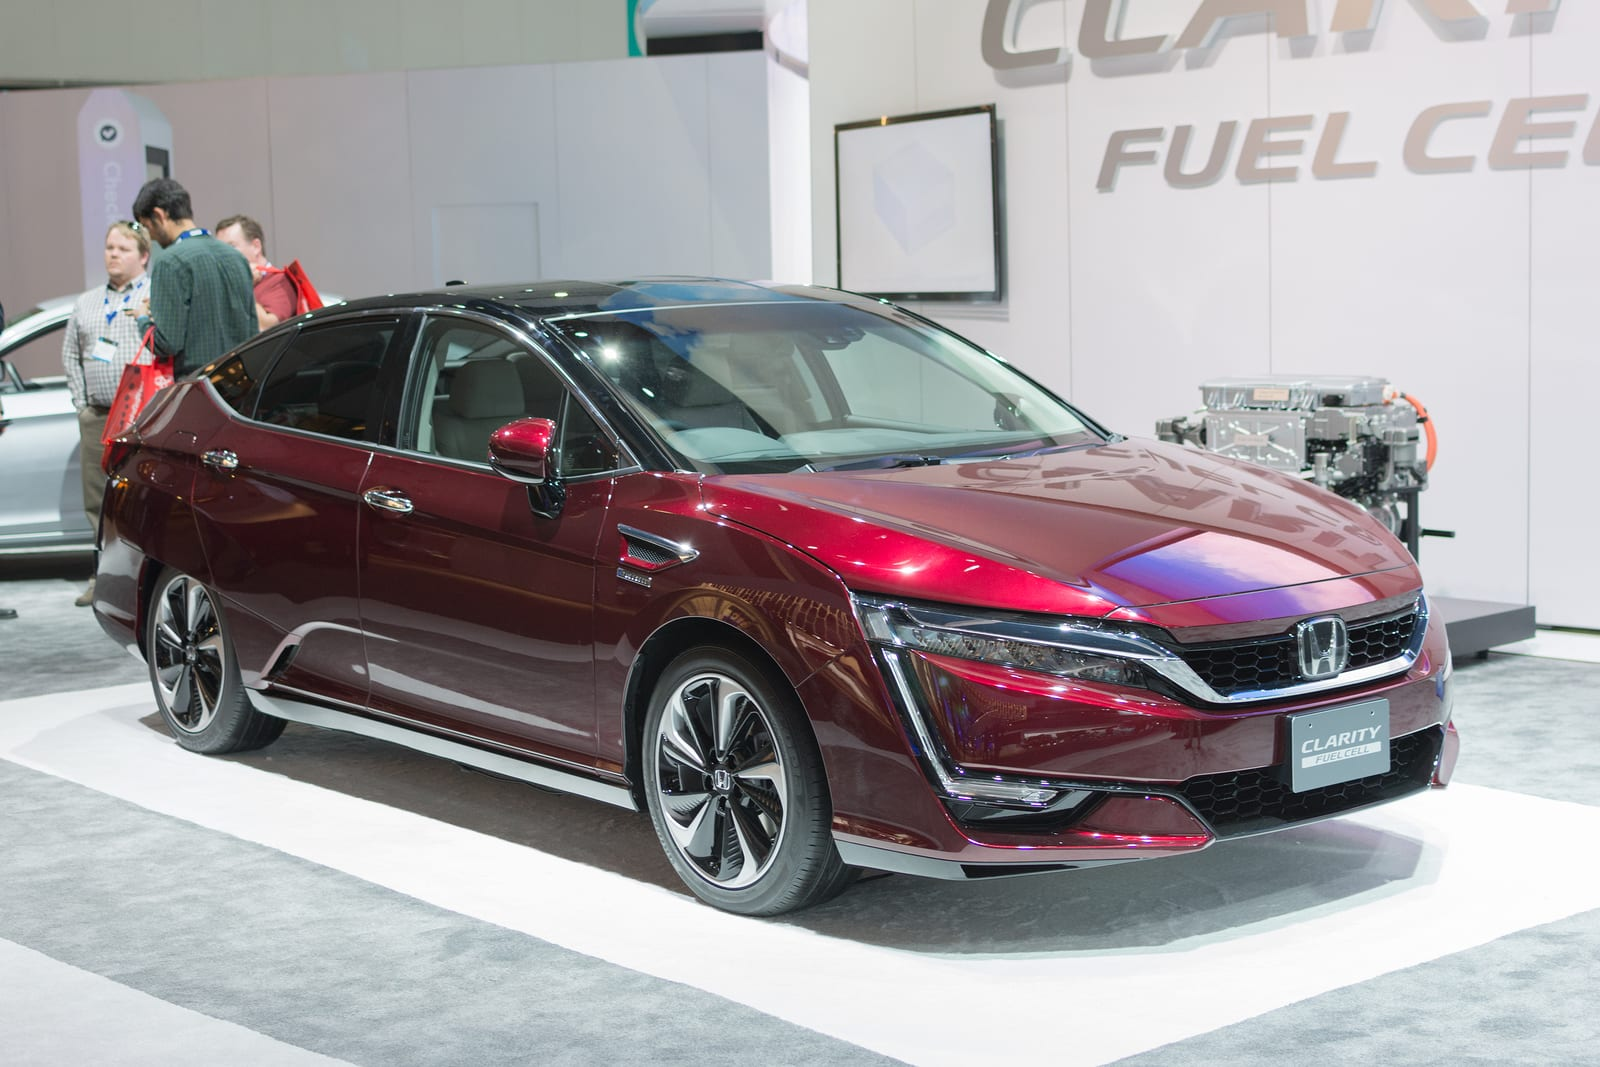 Honda Clarity - Hydrogen Fuel Cell Vehicle